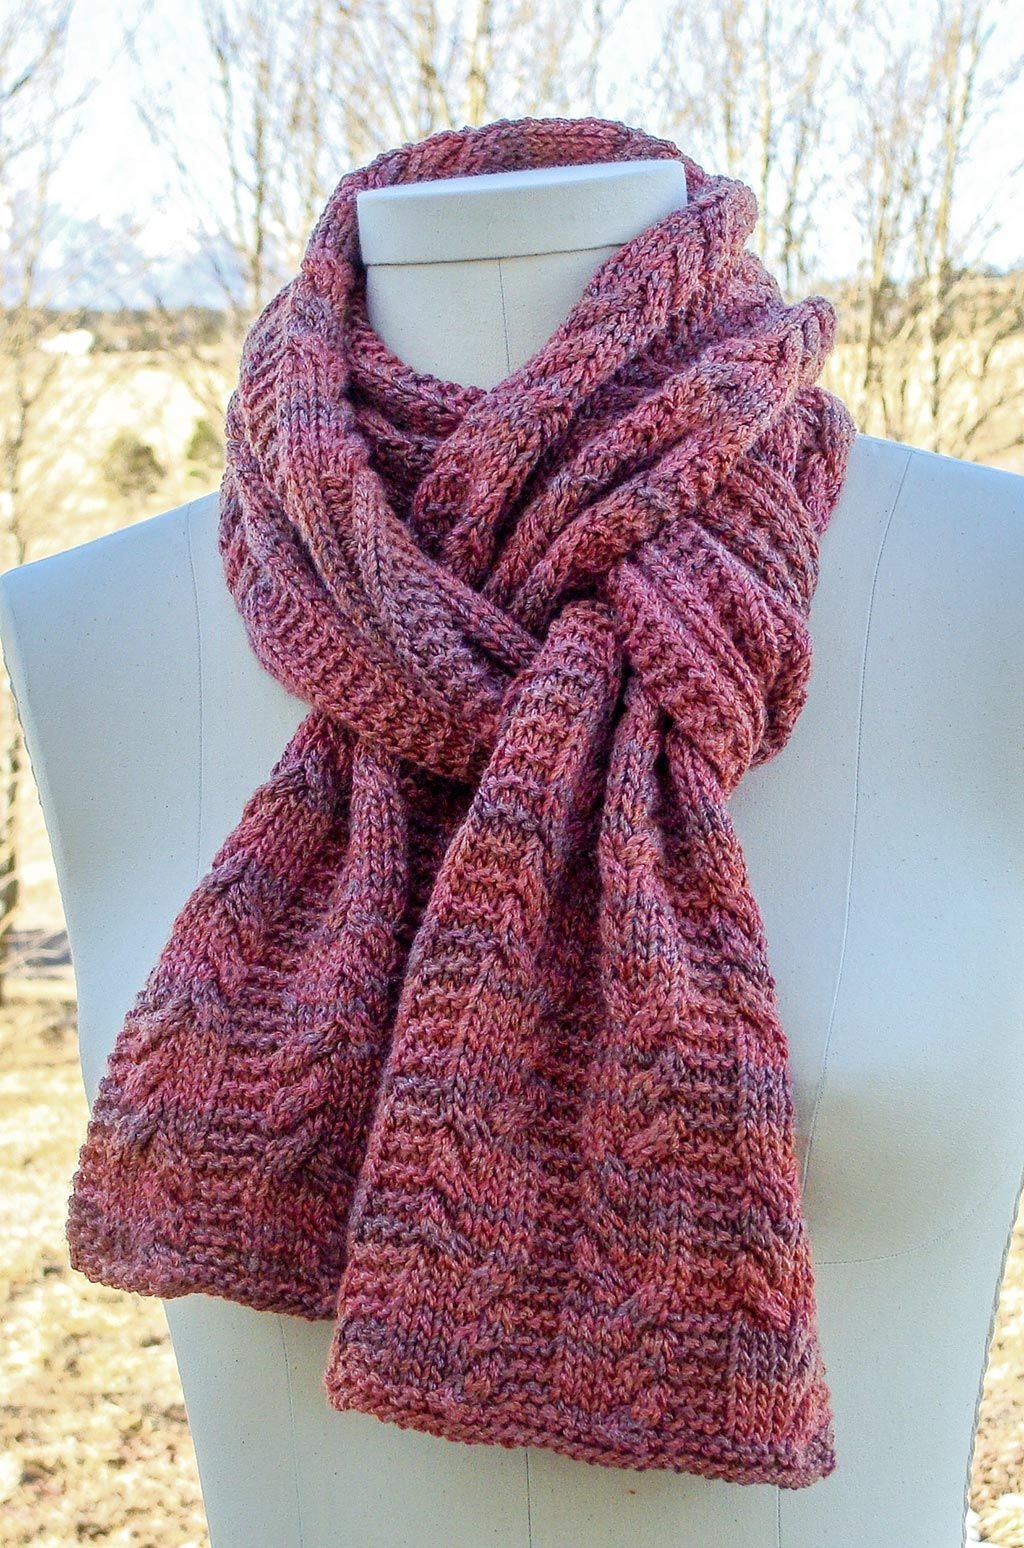 Deriva Seaman Scarf Knitted Scarves Knitting Patterns Knit Cowl